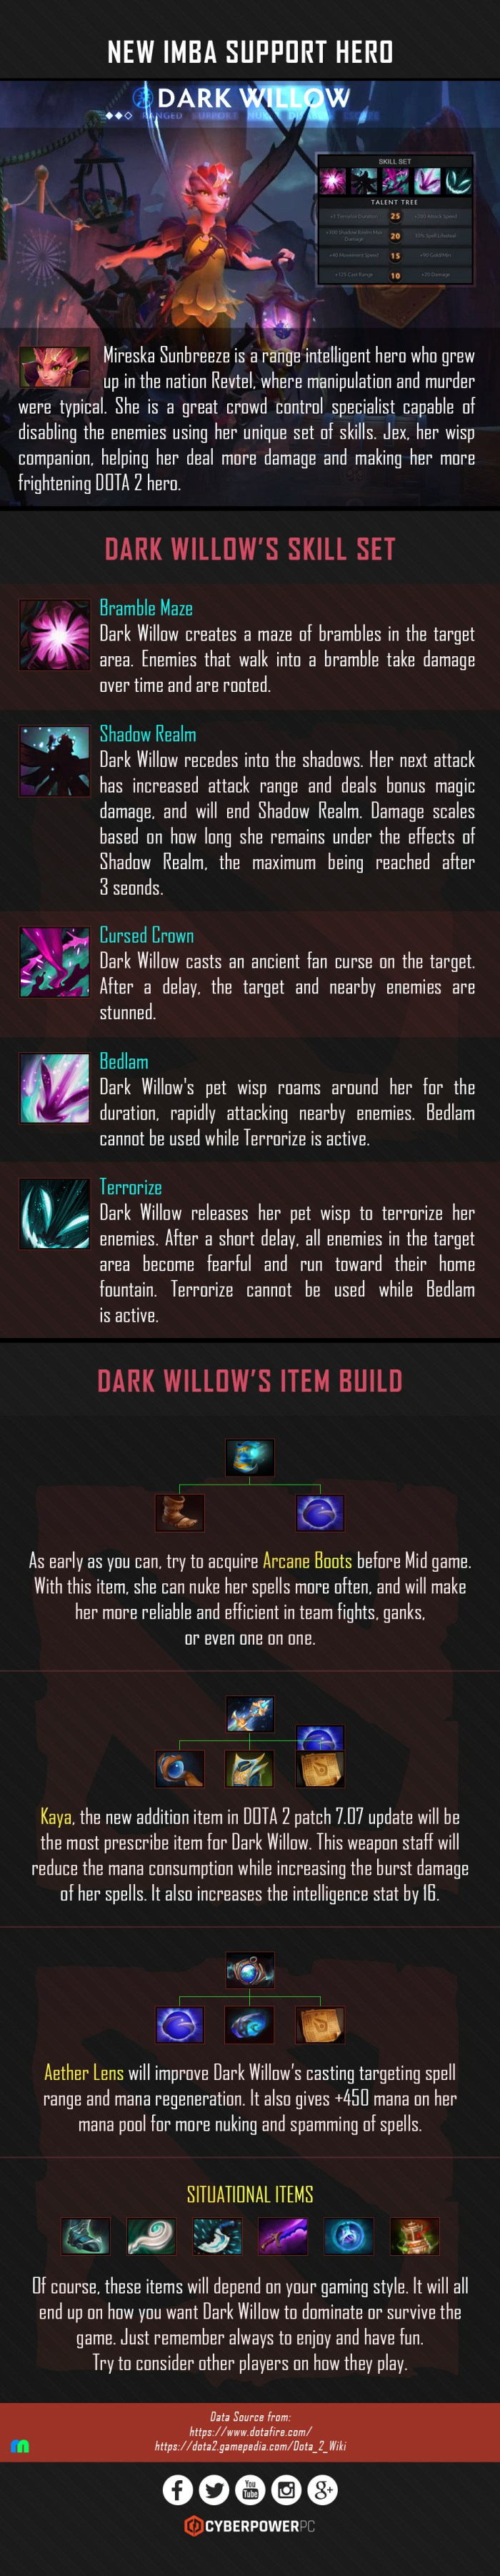 cyberpower-infographics-new-hero-dark-willow